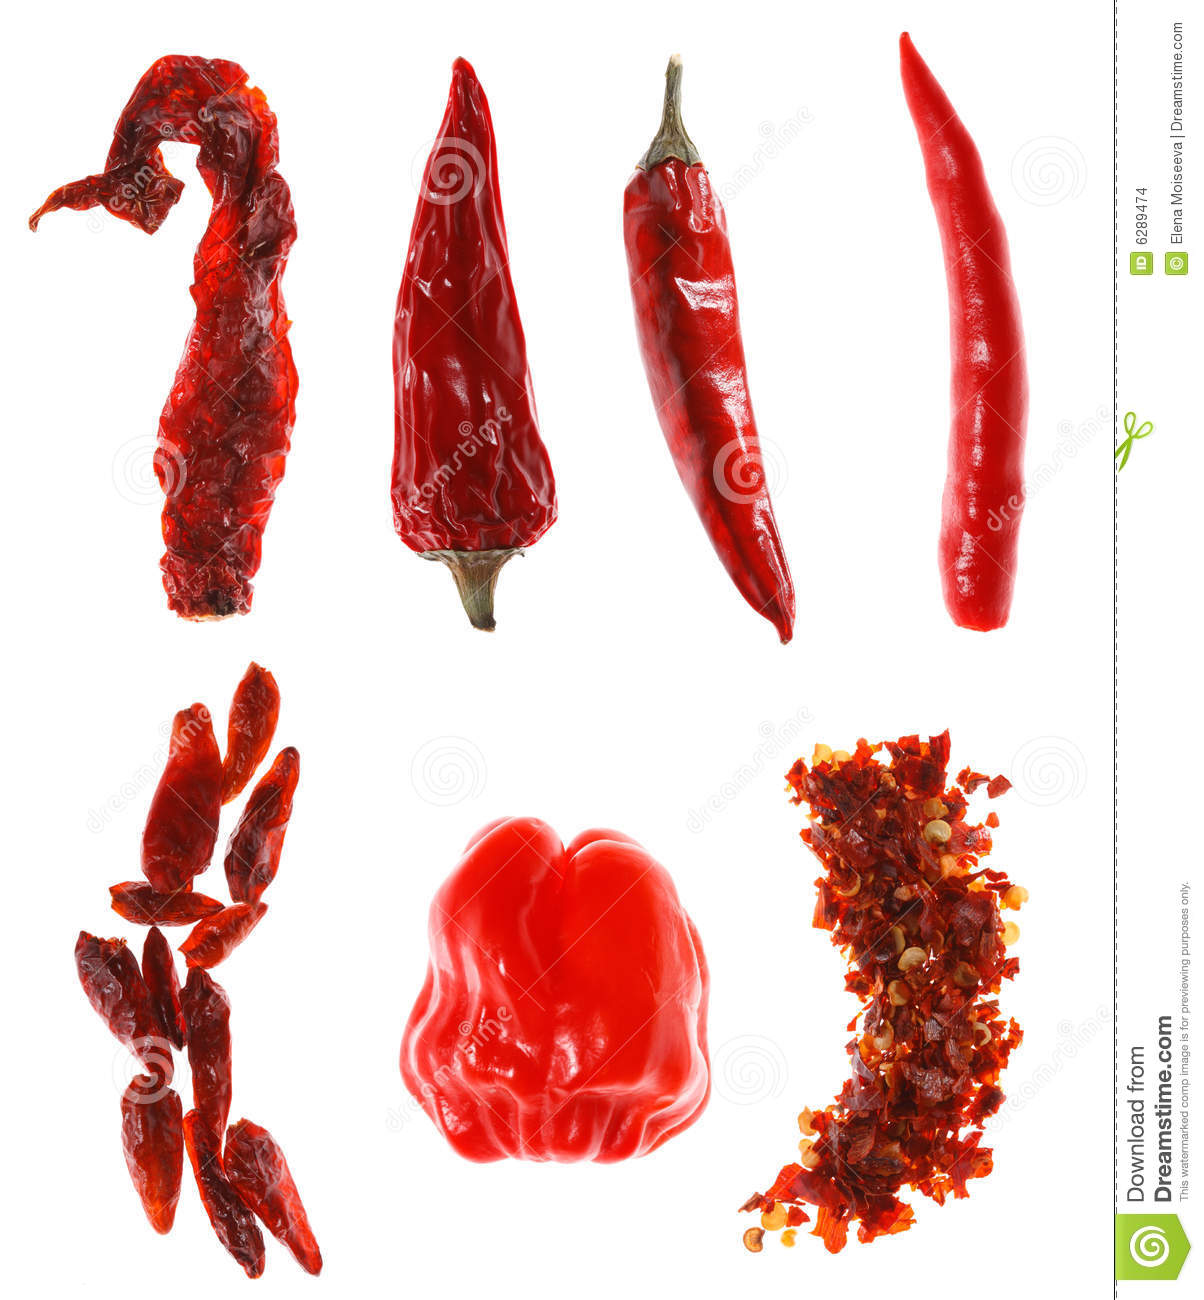 Different types of red chillies